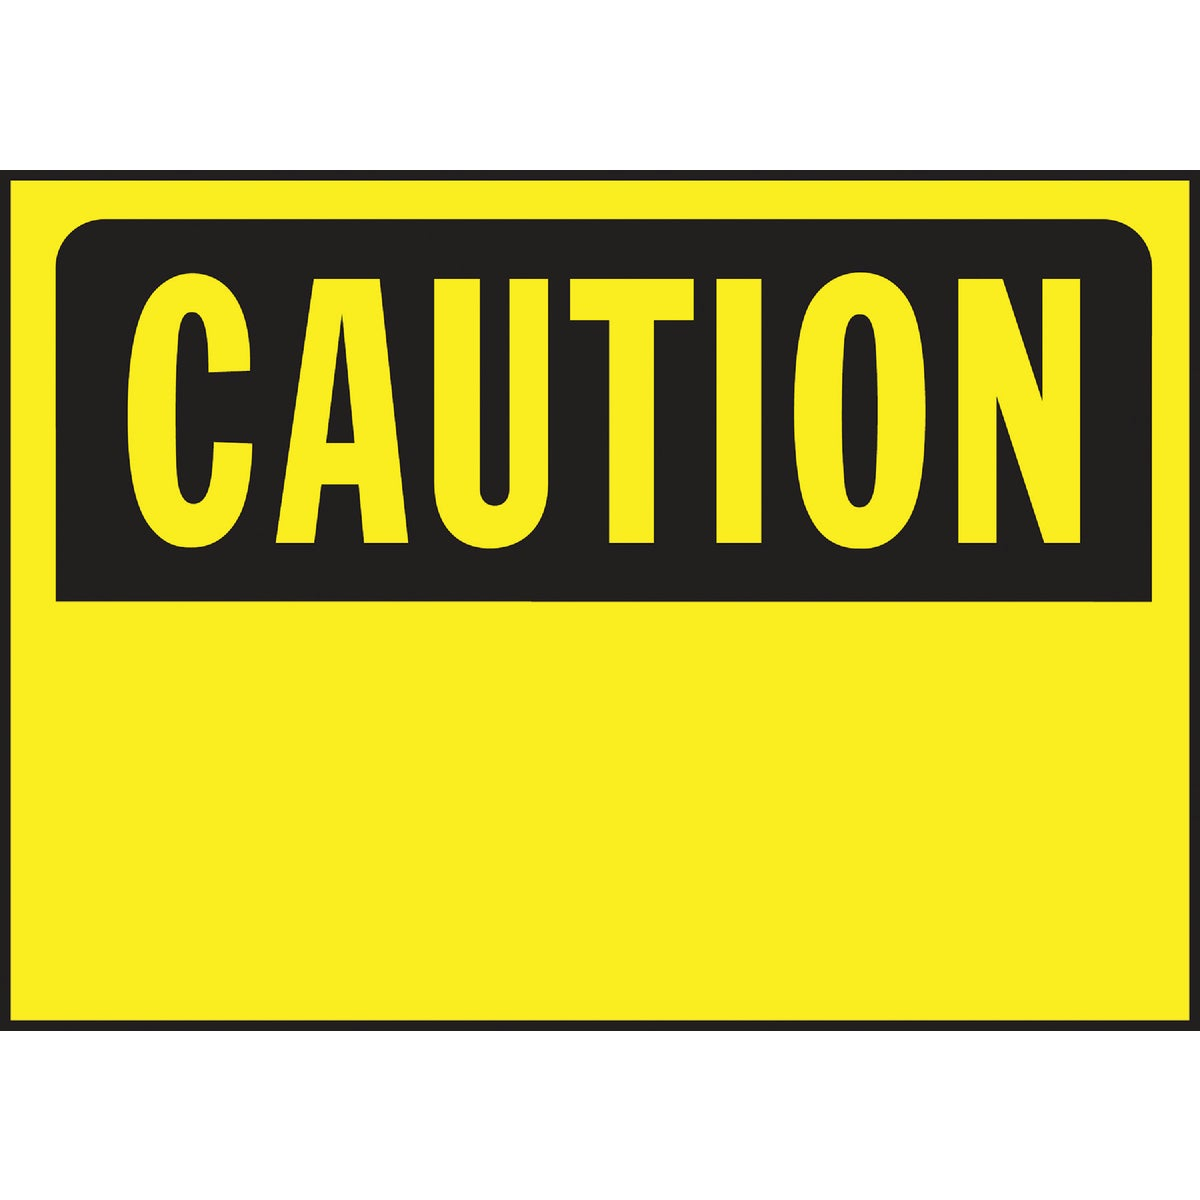 10X14 CAUTION SIGN - 562 by Hy Ko Prods Co